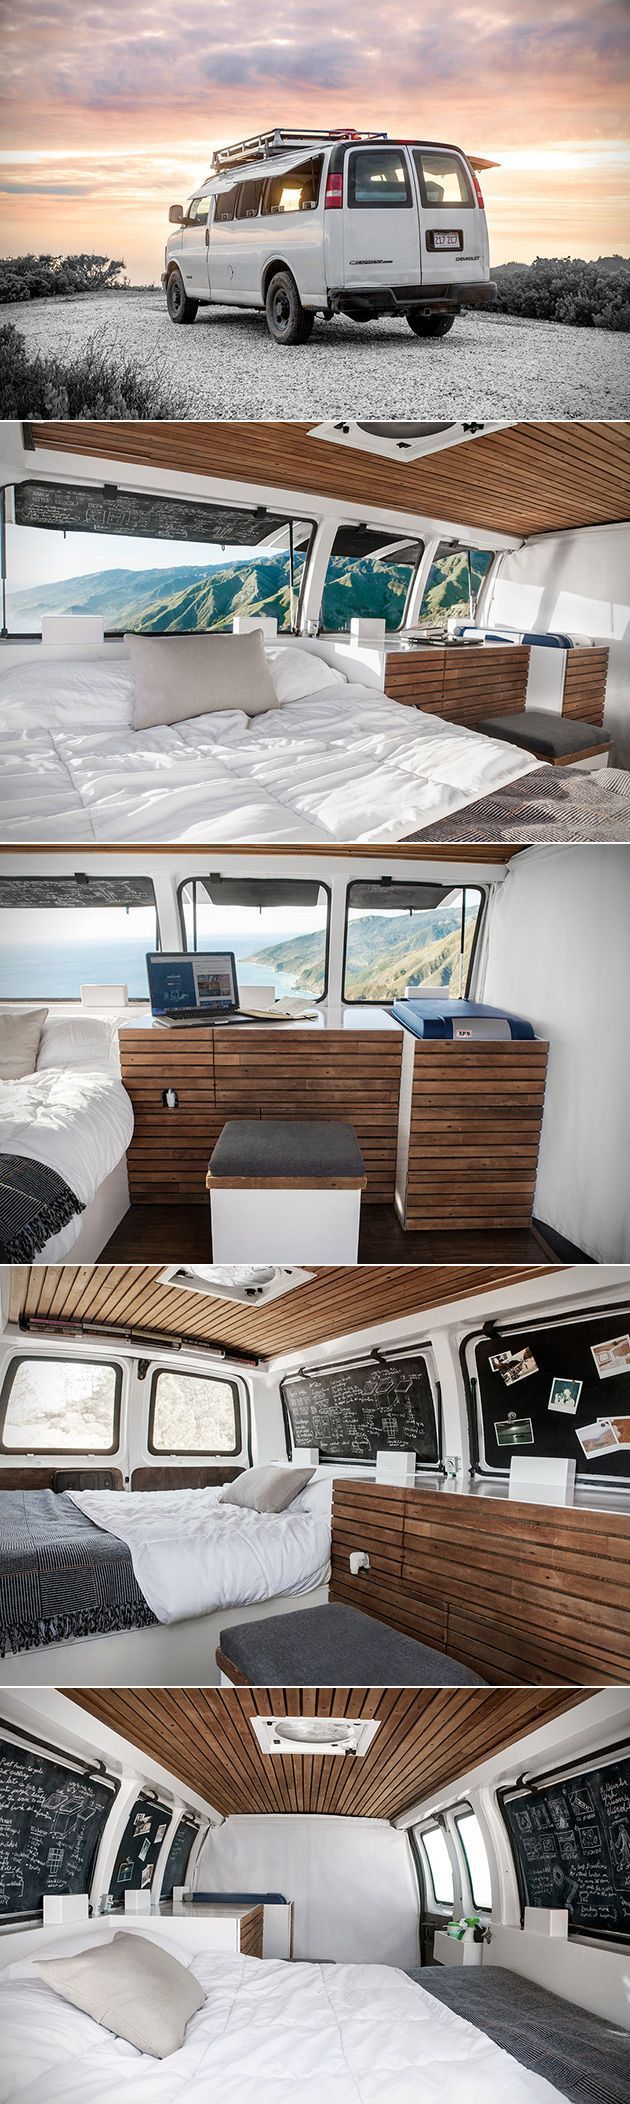 Camper Van Renovated Ideas For Your Rv18 - camperism